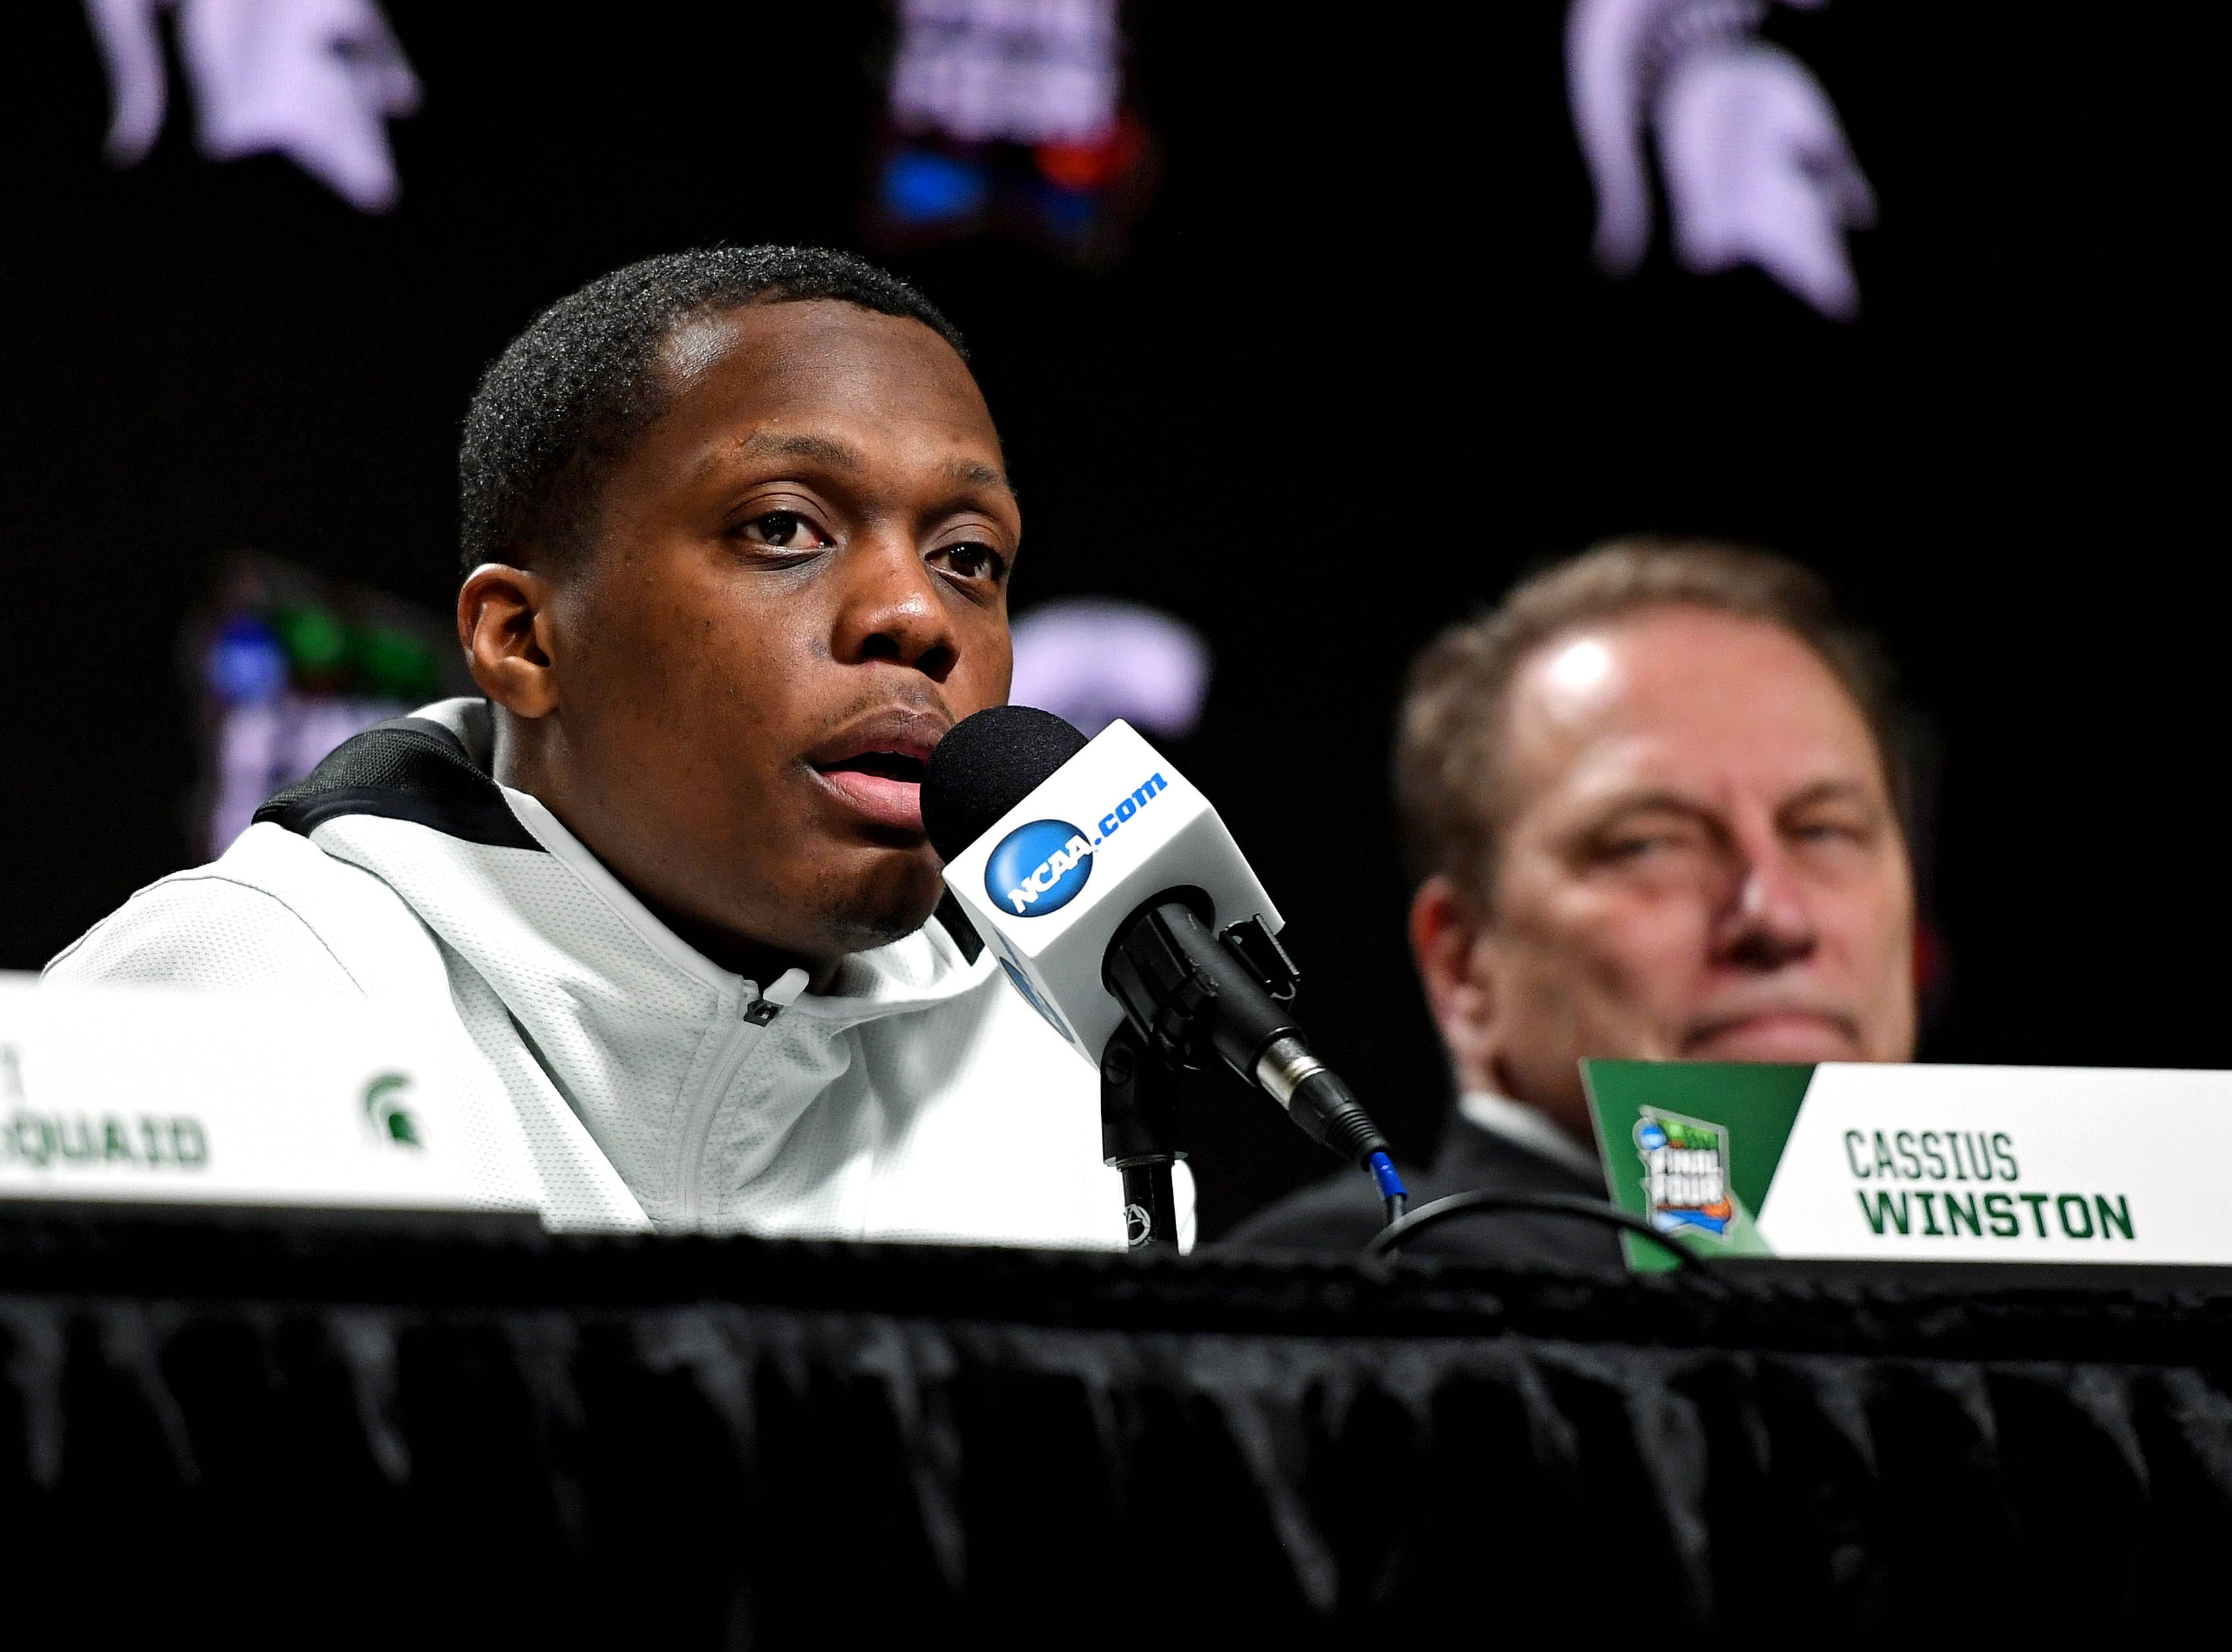 Apr 6, 2019; Minneapolis, MN, USA; Michigan State Spartans guard Cassius Winston (5) speaks during a press conference after the game against the Texas Tech Red Raiders in the semifinals of the 2019 men's Final Four at US Bank Stadium. Mandatory Credit: Shanna Lockwood-USA TODAY Sports